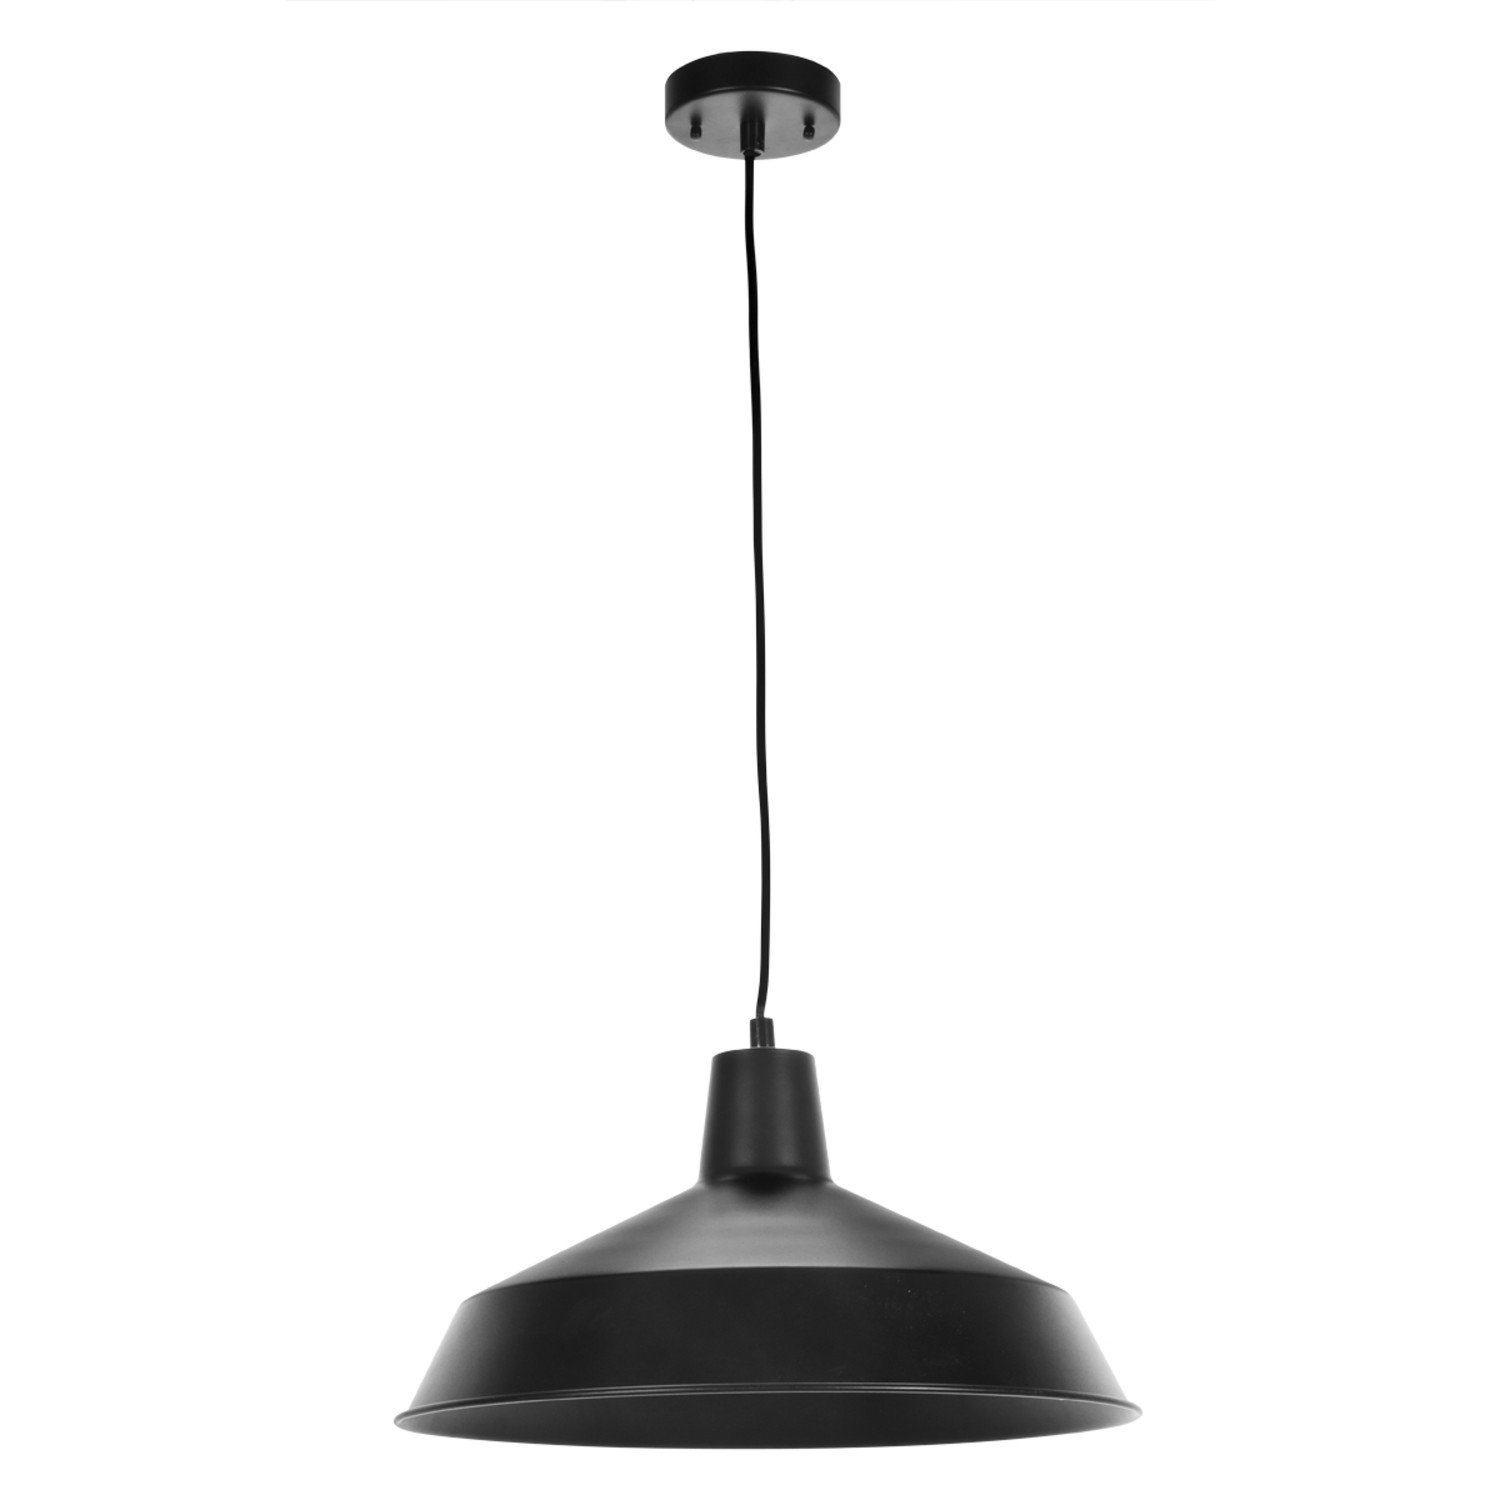 Globe Electric Barnyard 1-Light 16'' Industrial Warehouse Pendant, Matte Black Finish, 65155 by Globe Electric (Image #1)